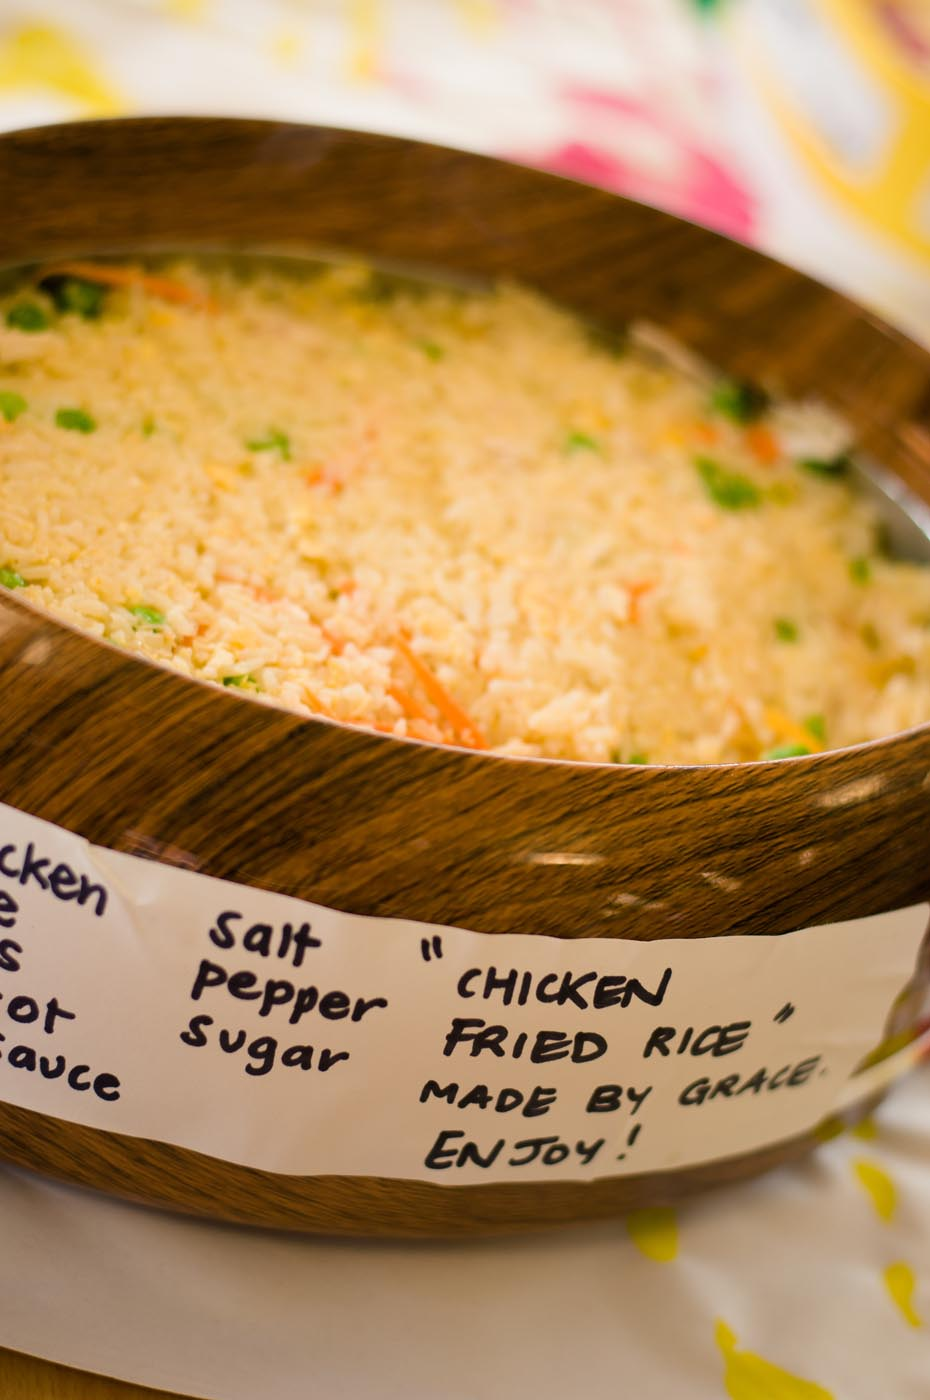 Photo of chicken fried rice in a wooden container with the ingredients listed around the outside - click to view larger image